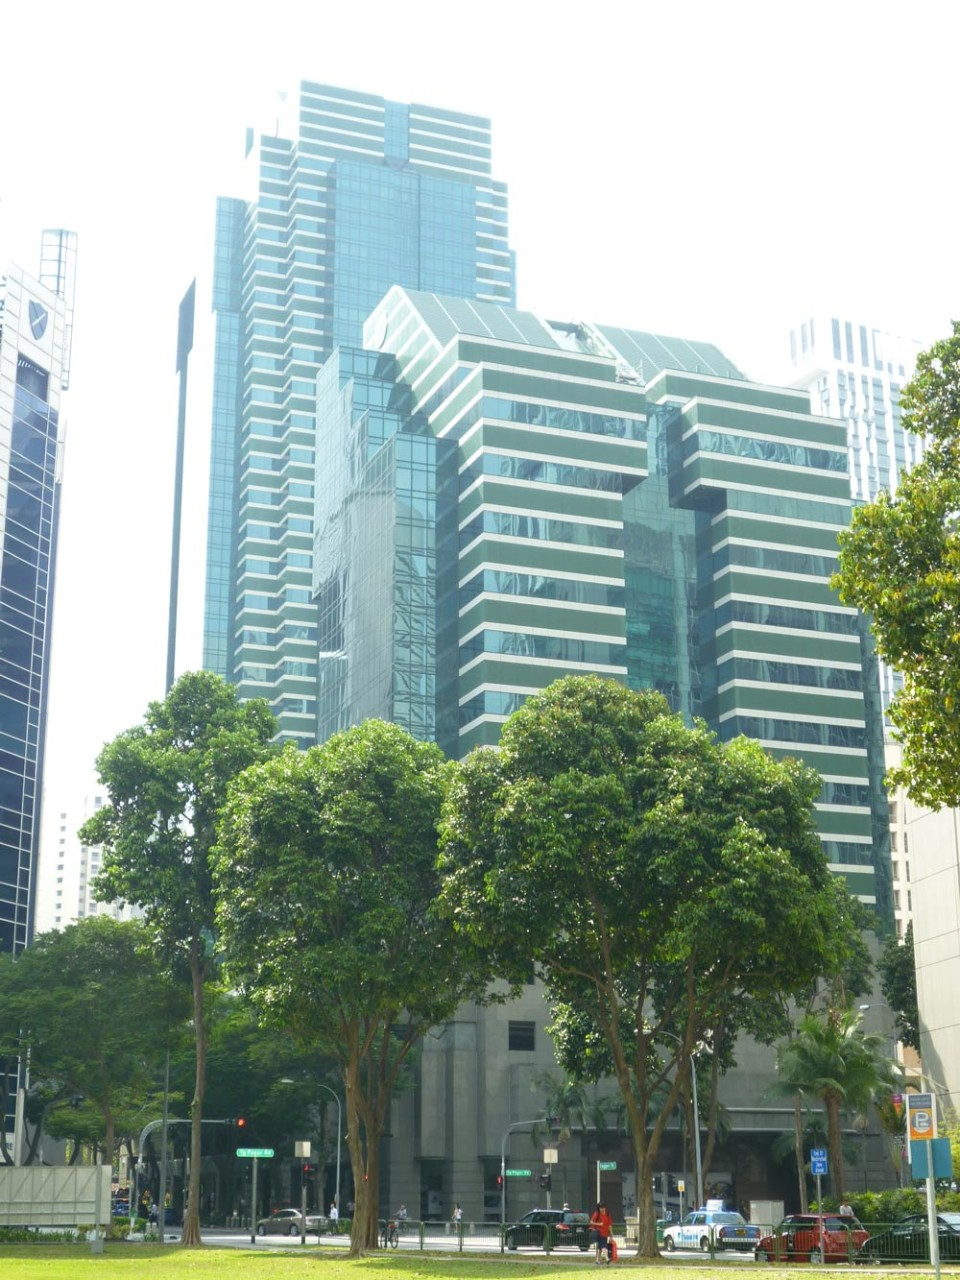 Keppel Towers and Keppel Towers 2, Tanjong Pagar Road, office buildings, Hoe Chiang Road, Singapore, CBD